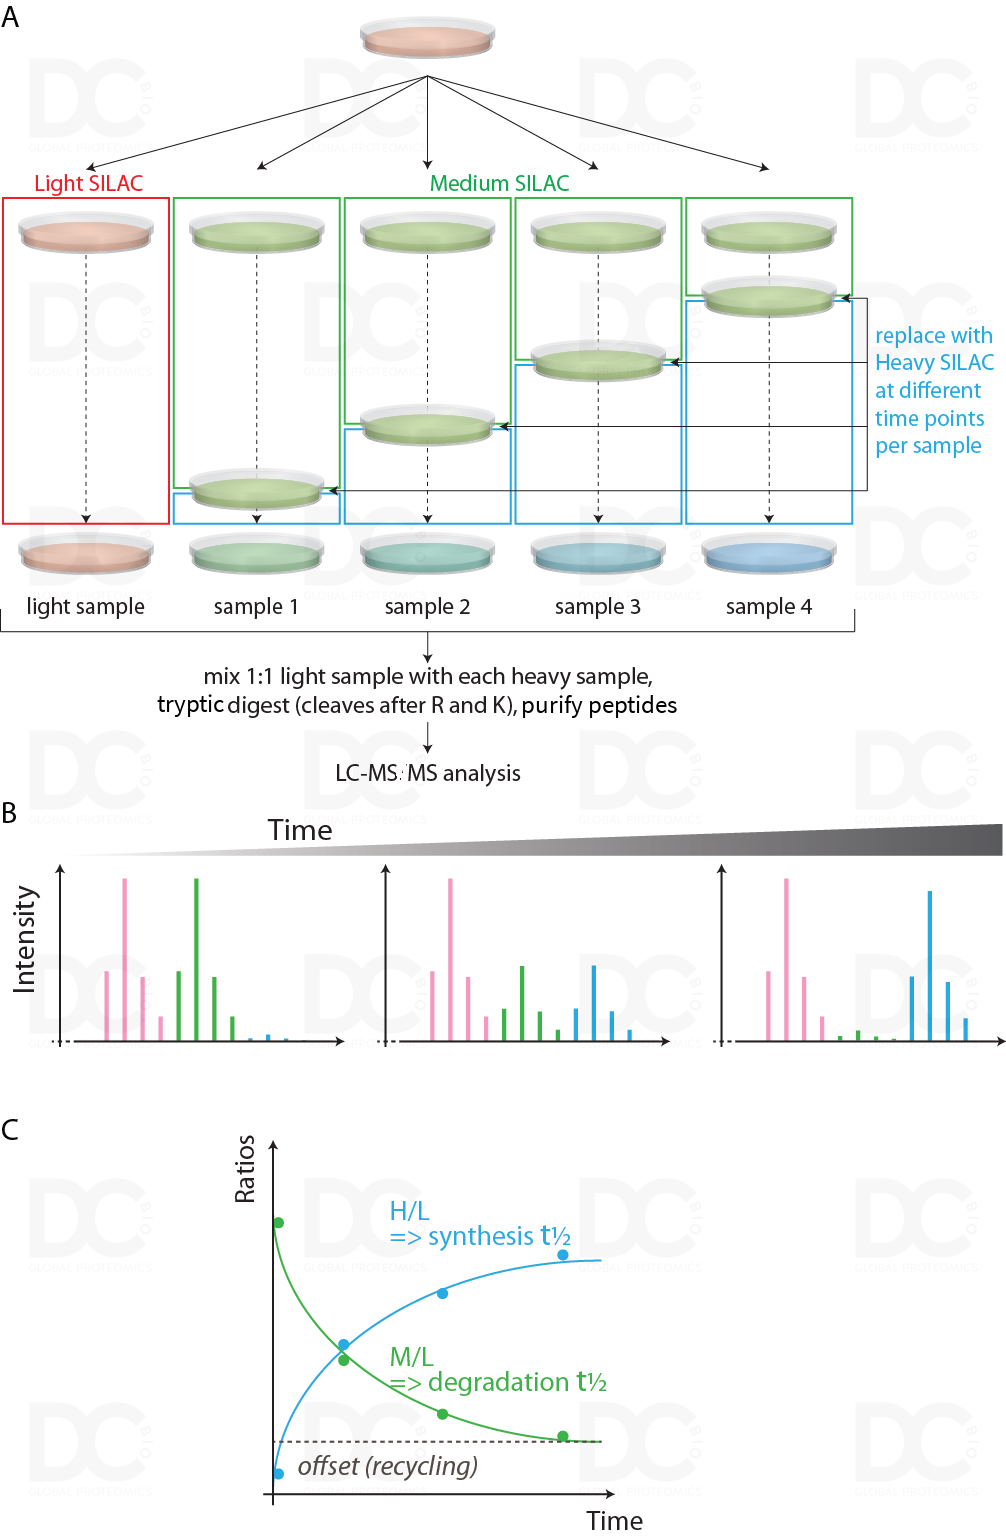 SILAC labeling is a powerful tool to assess global changes in protein turnover